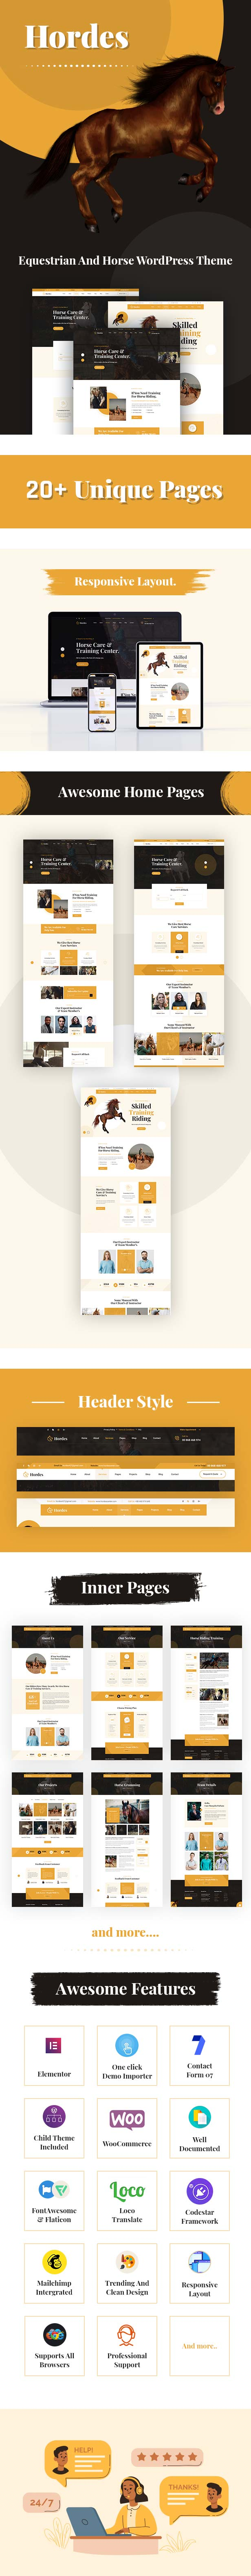 Hordes - Equestrian And Horse WordPress Theme - 3